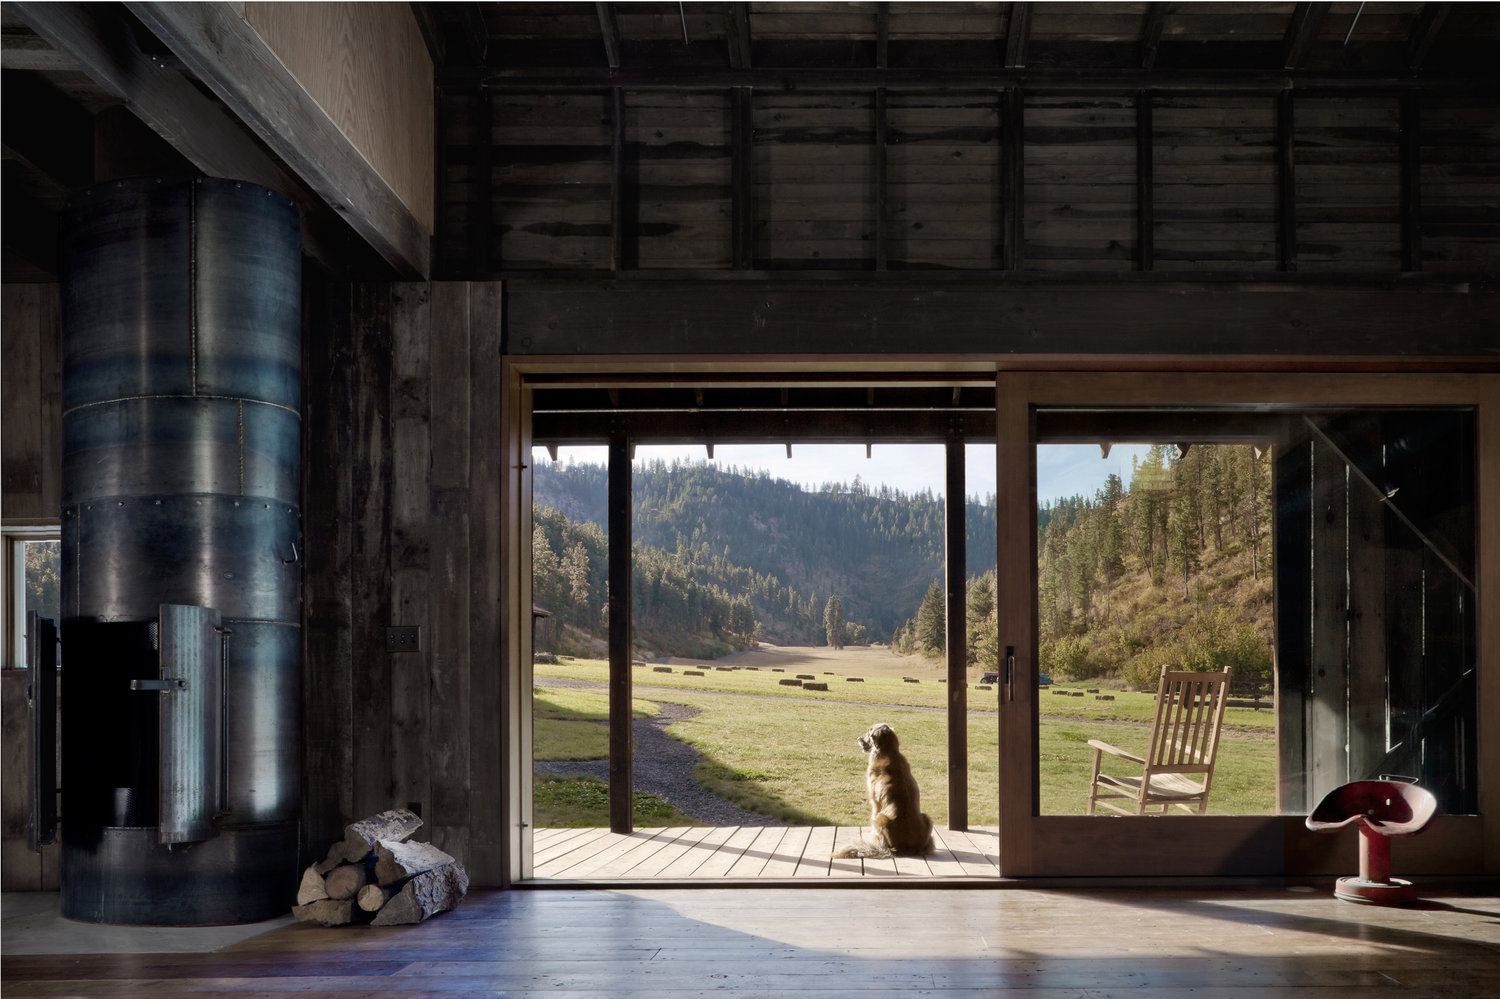 The home is indoor outdoor as much as possible, there are glazed doors to bring views and light in